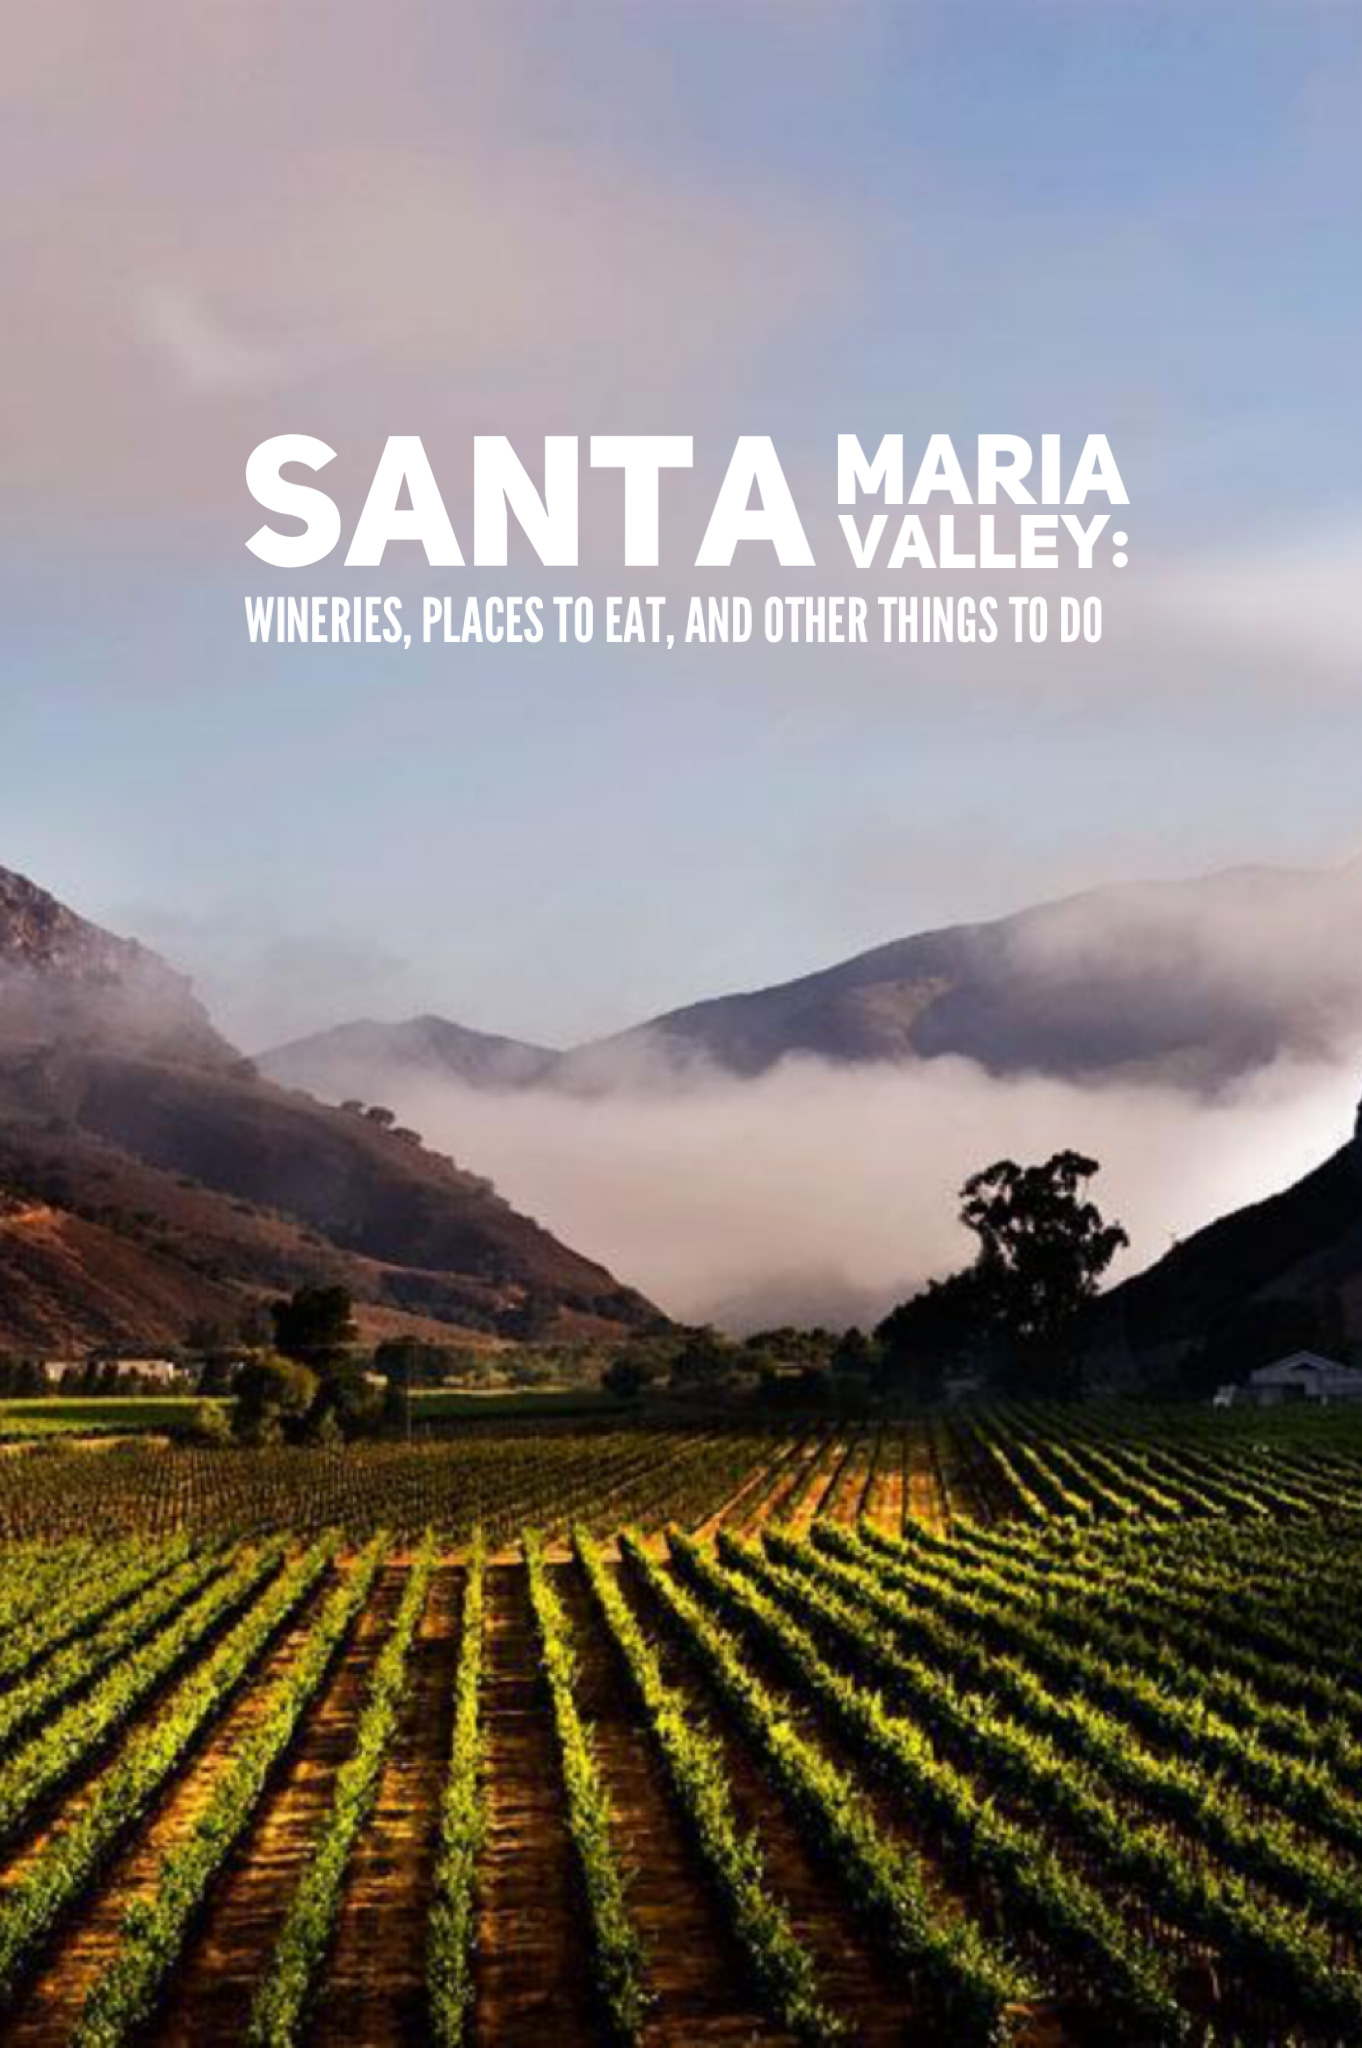 Things to do in Santa Maria Valley